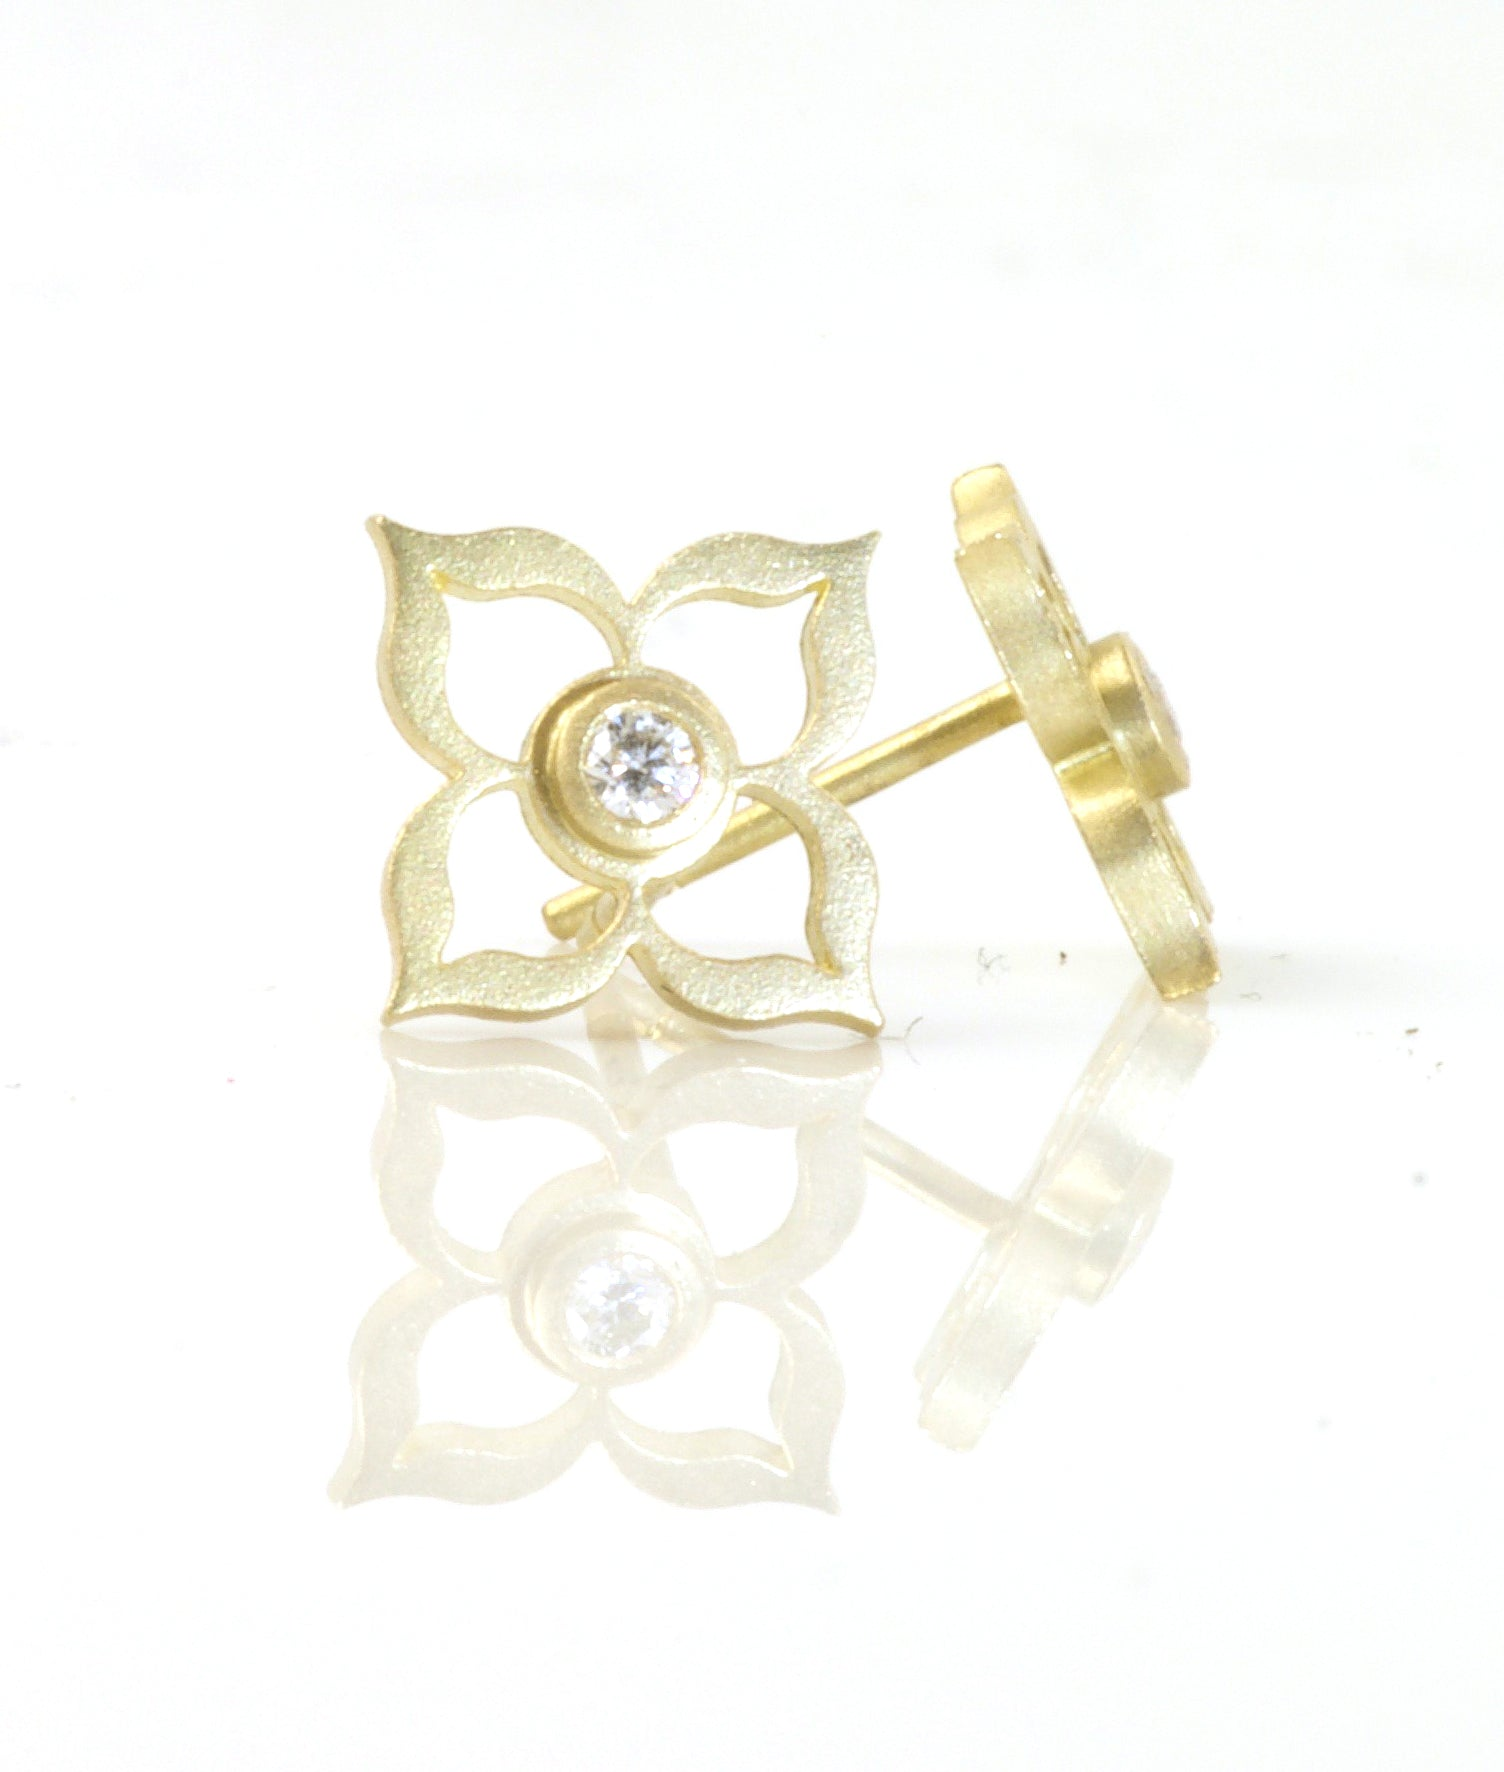 Small Flower studs with Diamonds